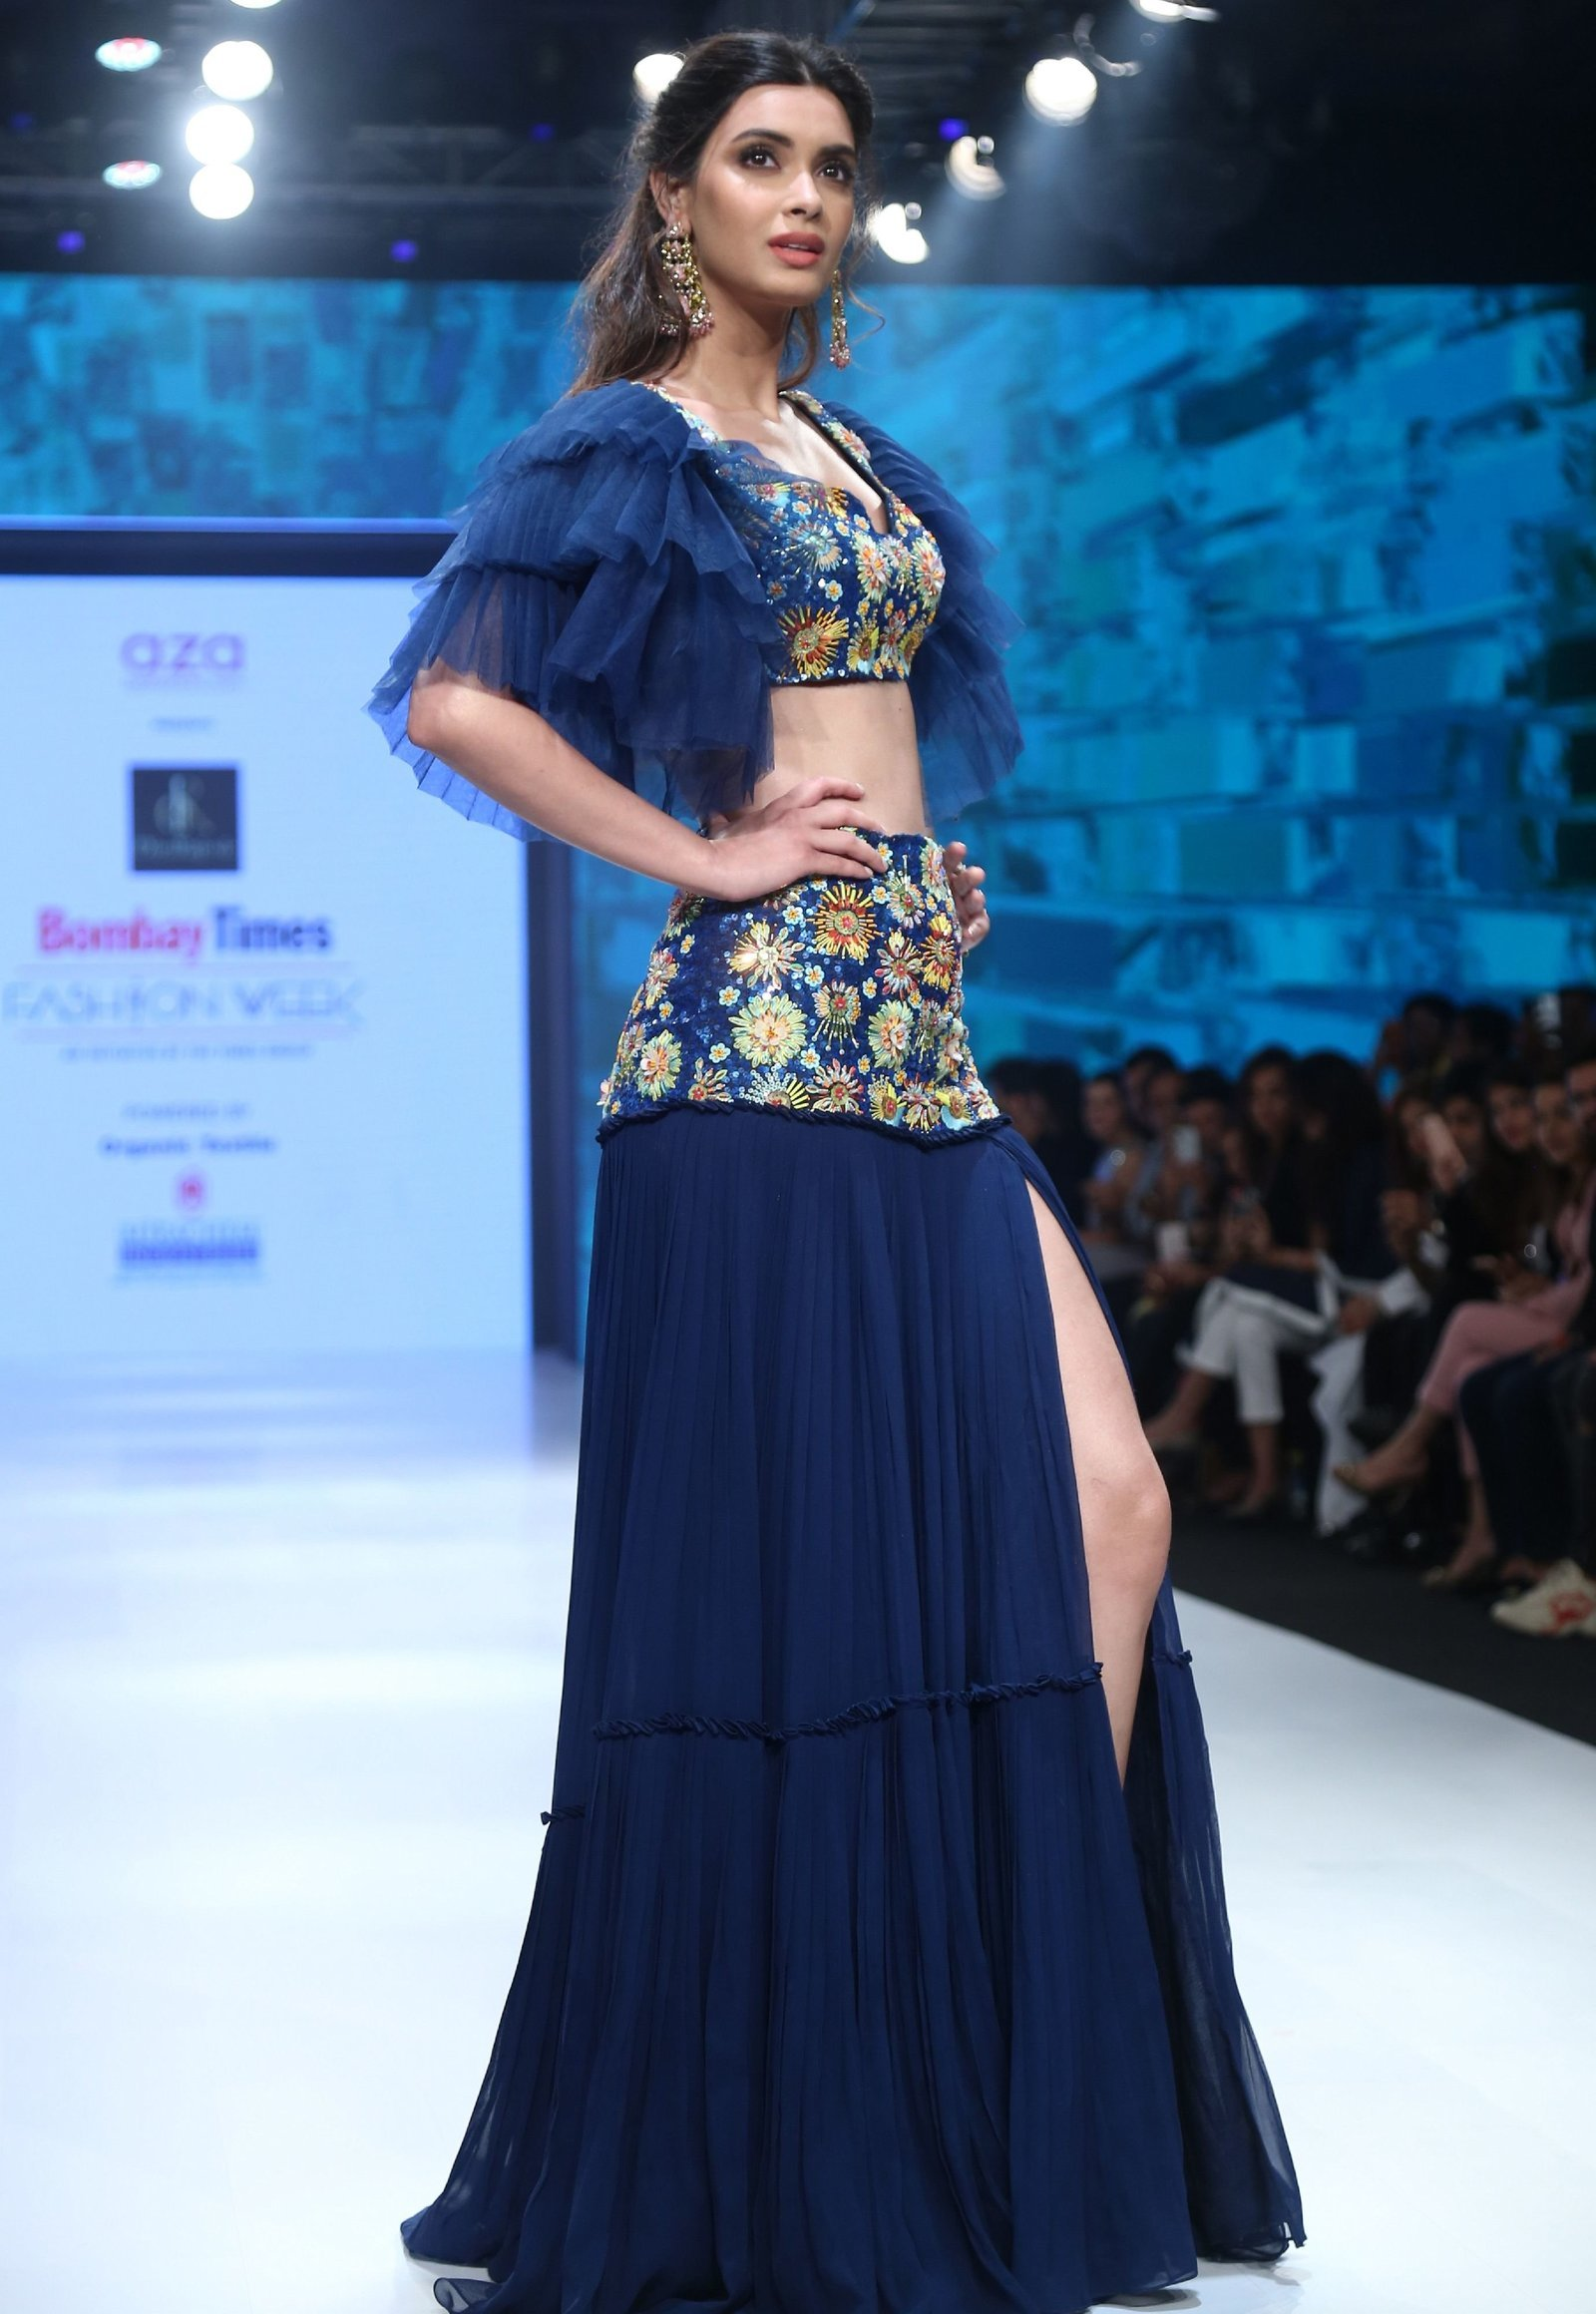 Diana Penty - Photos: Bombay Times Fashion Week 2020 Day 3 | Picture 1726741